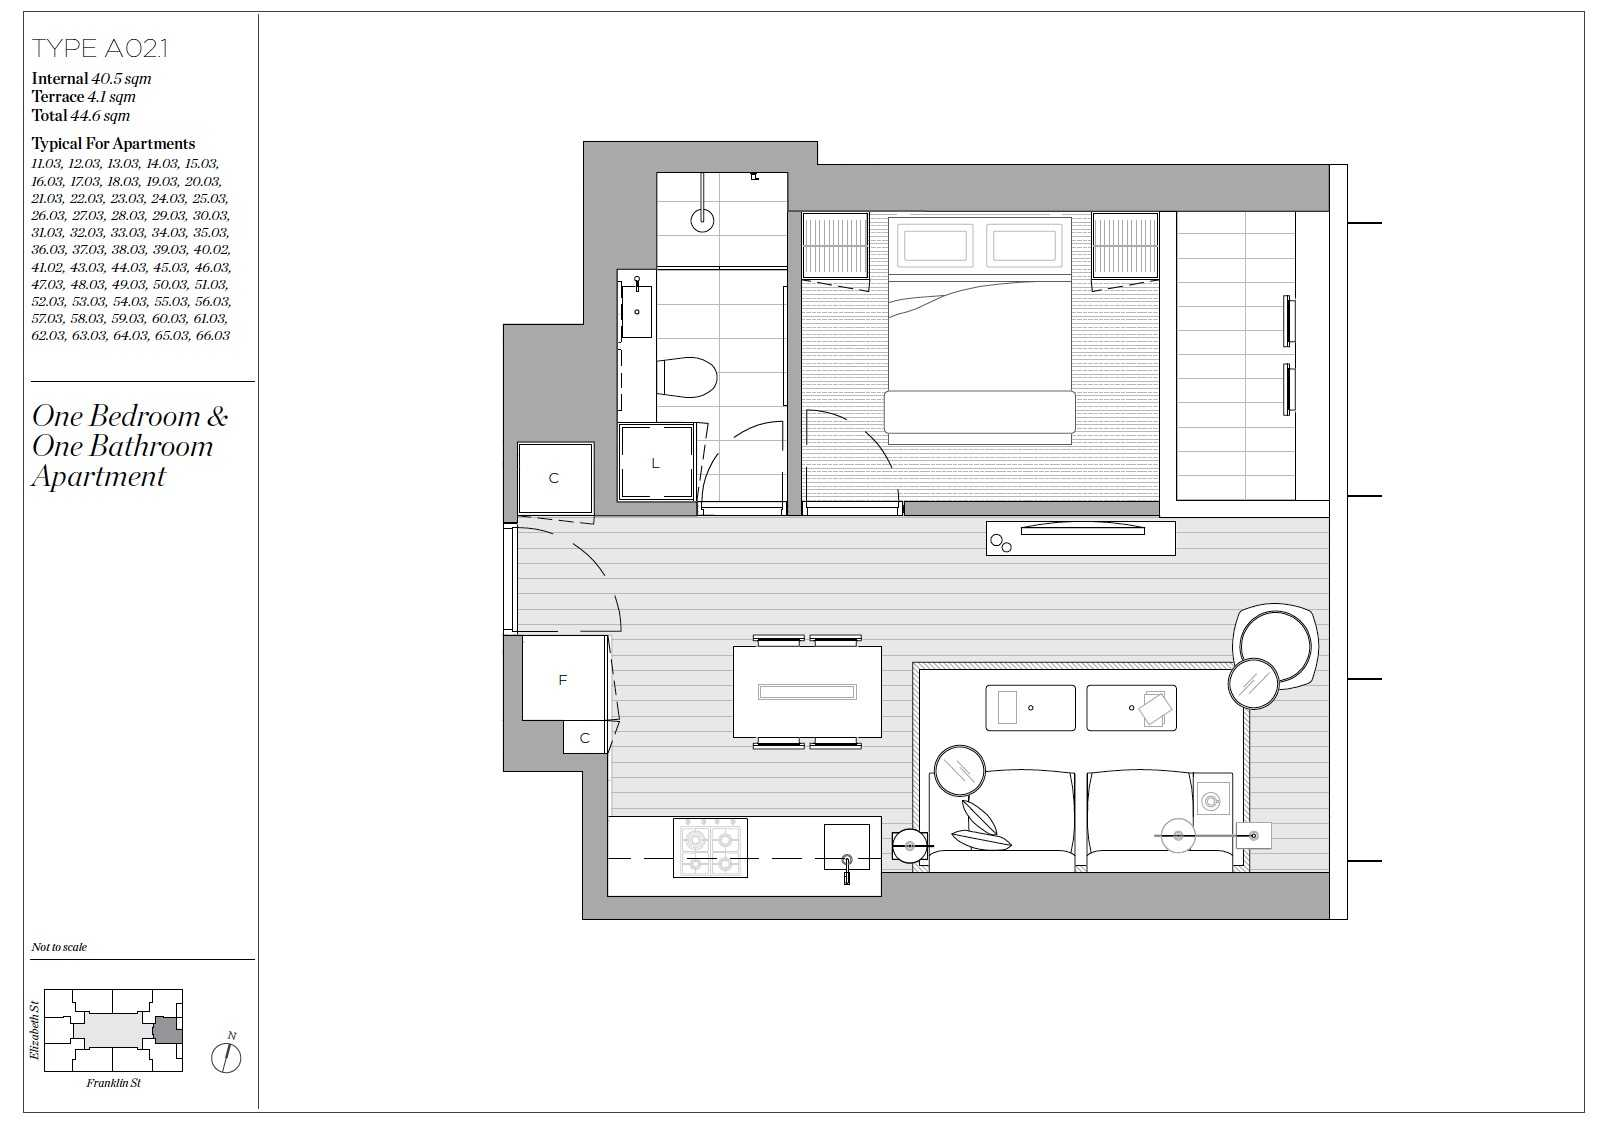 Victoria One Subsale Floor Plan 41.02